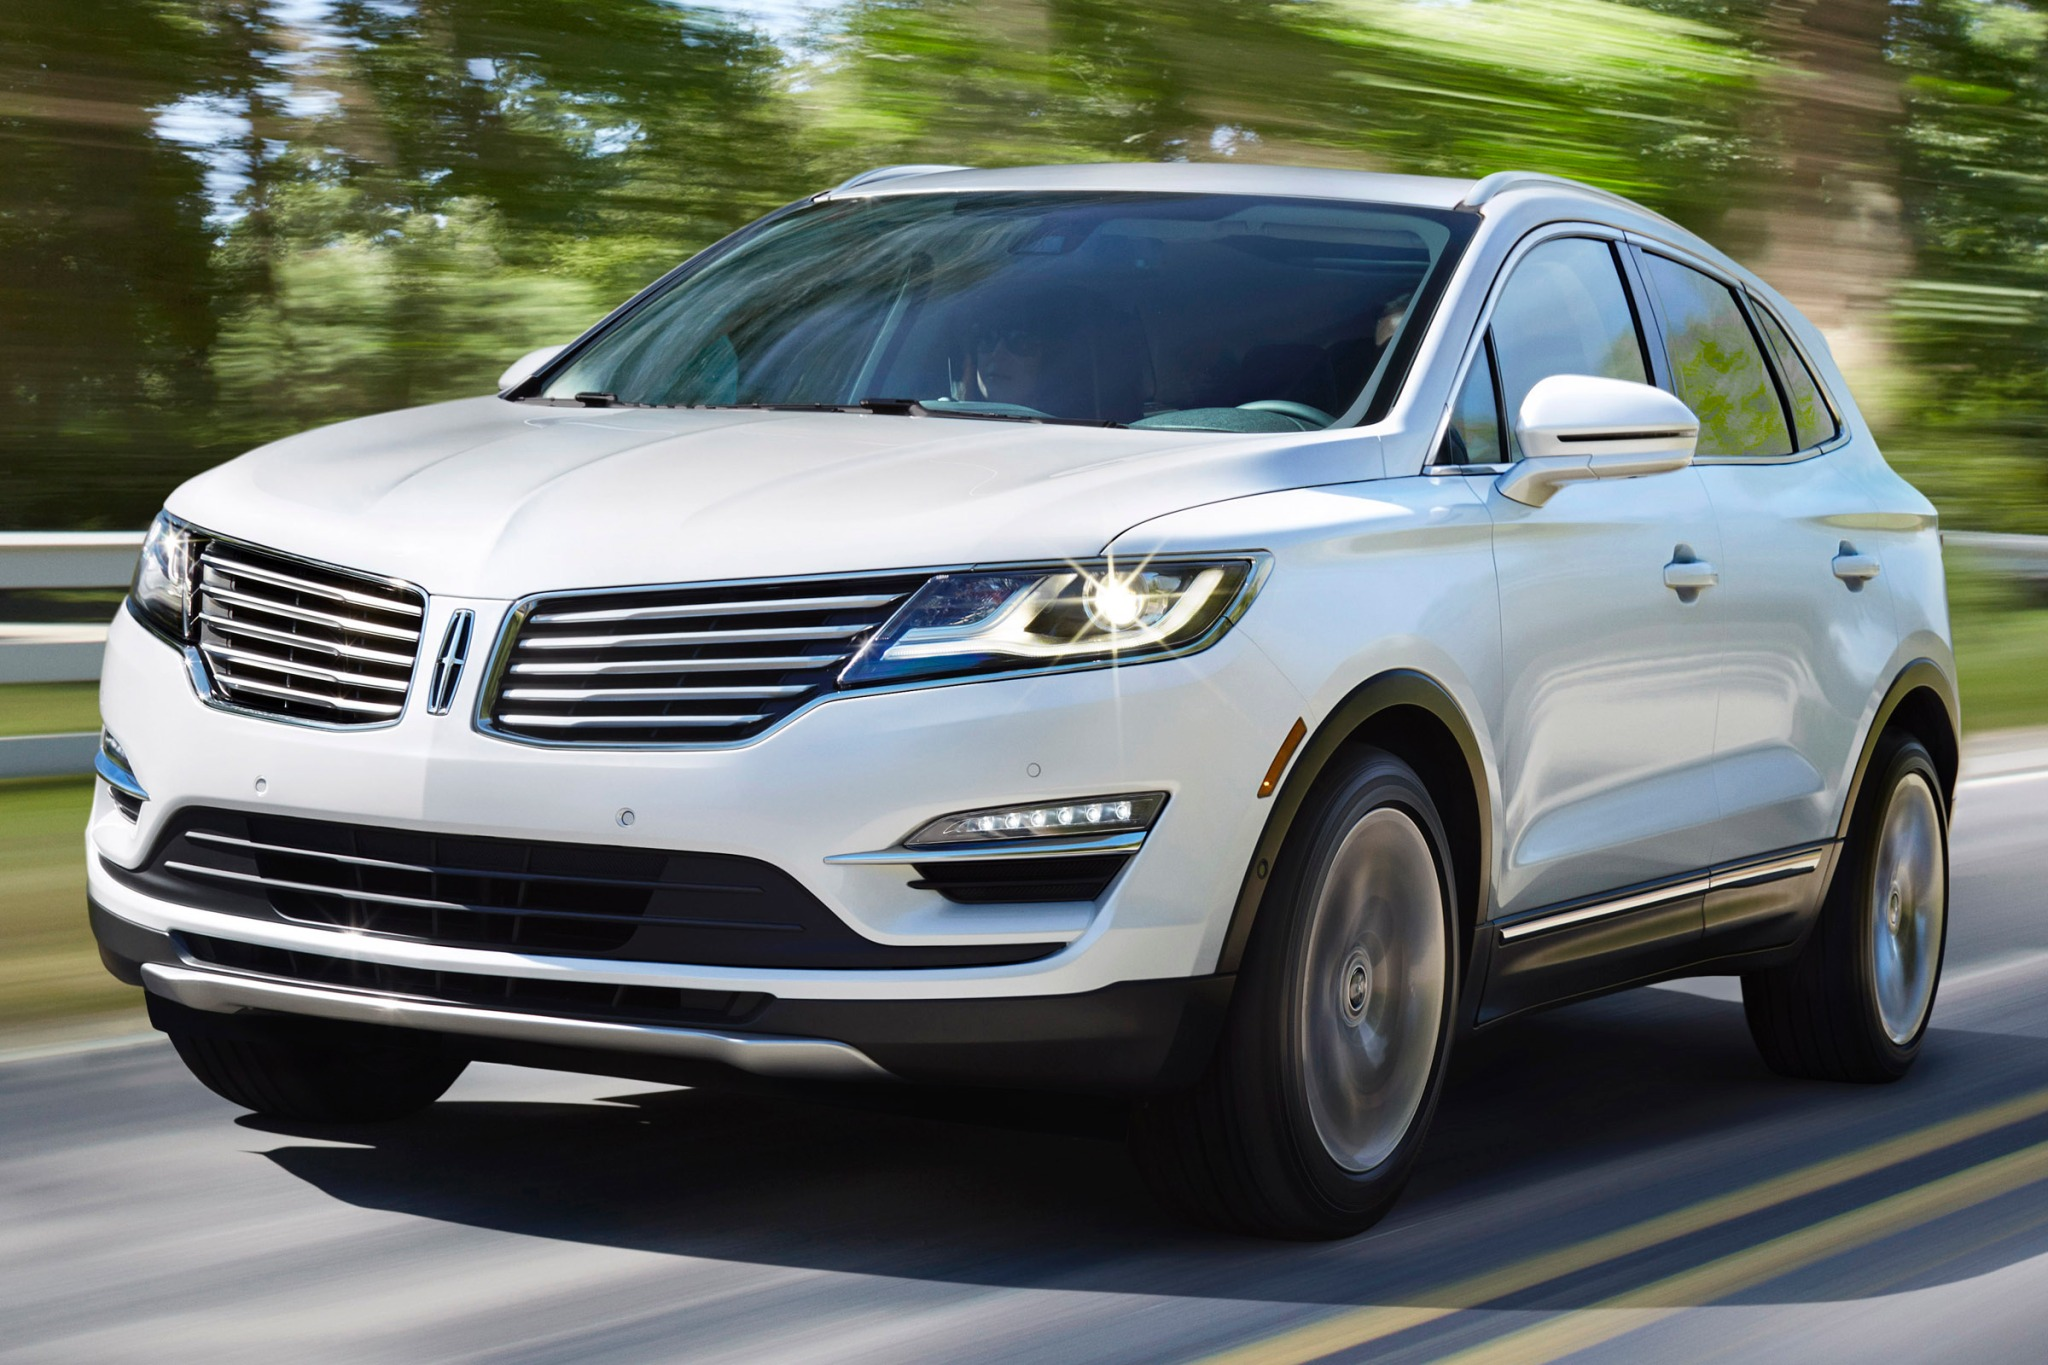 2015 Lincoln MKC 4dr SUV  exterior #3